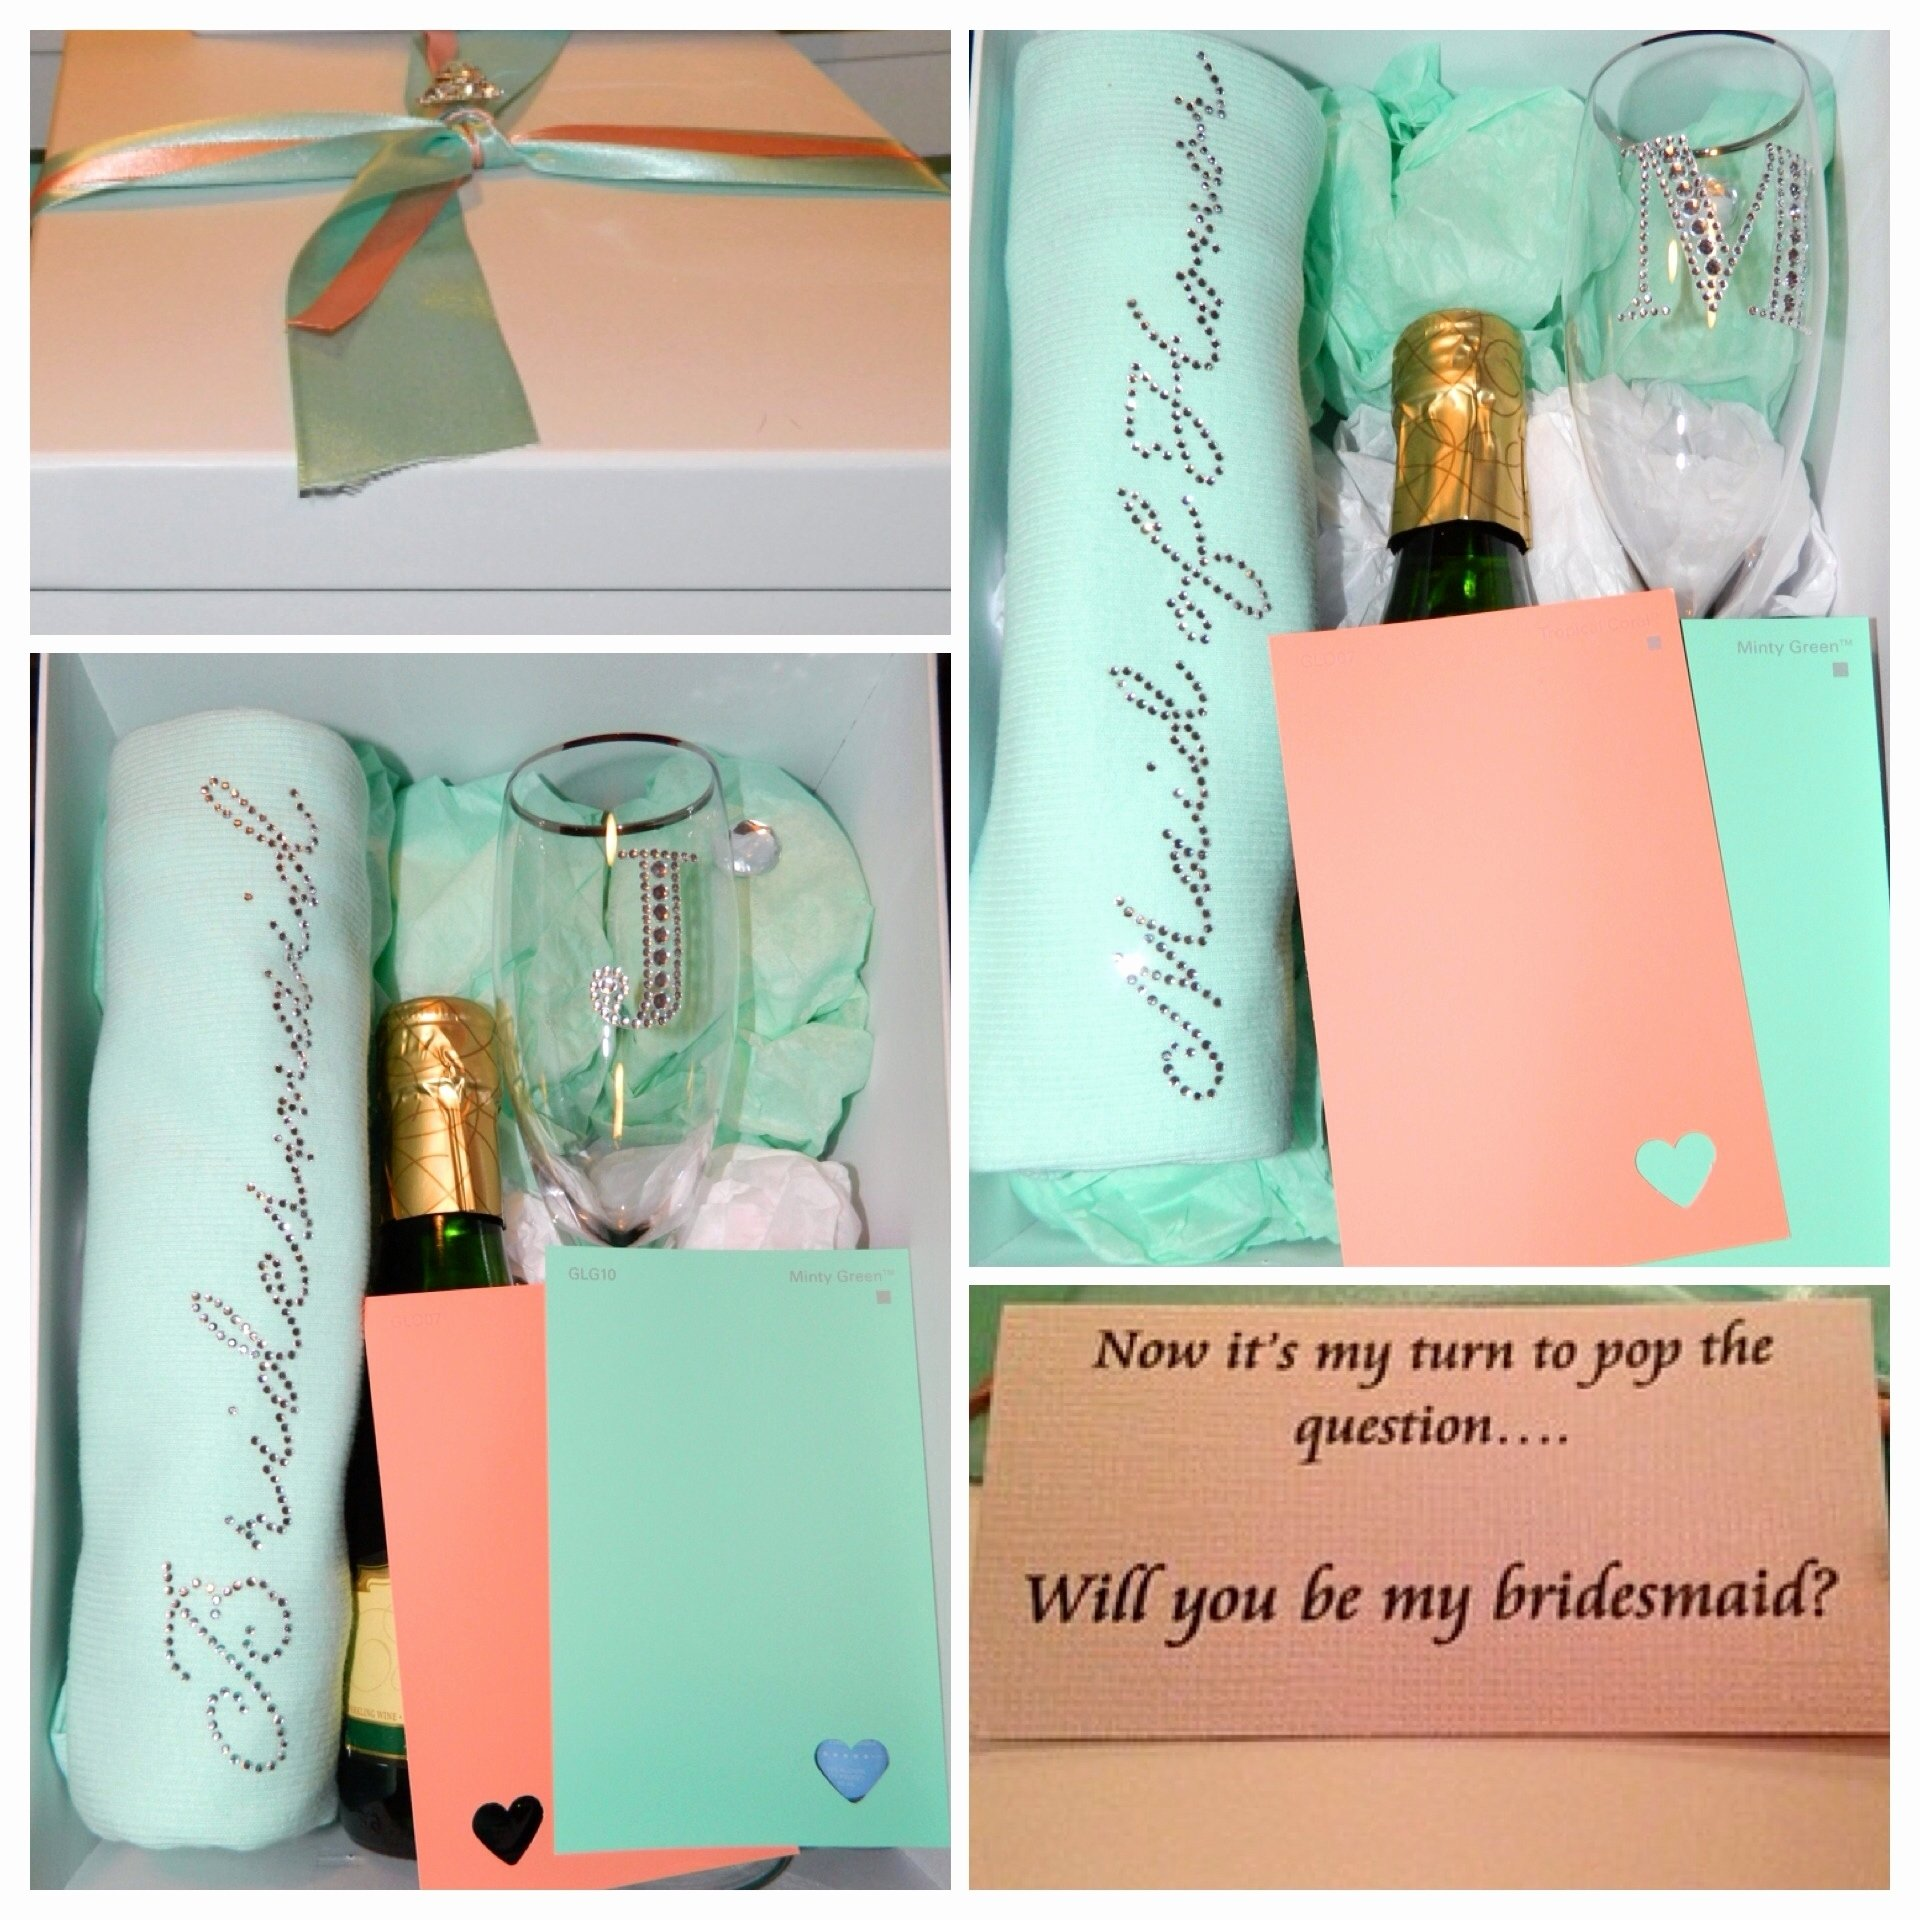 10 Elegant Gift Ideas For Maid Of Honor wedding gift from maid of honor to bride lovely maid honor proposal 2 2020